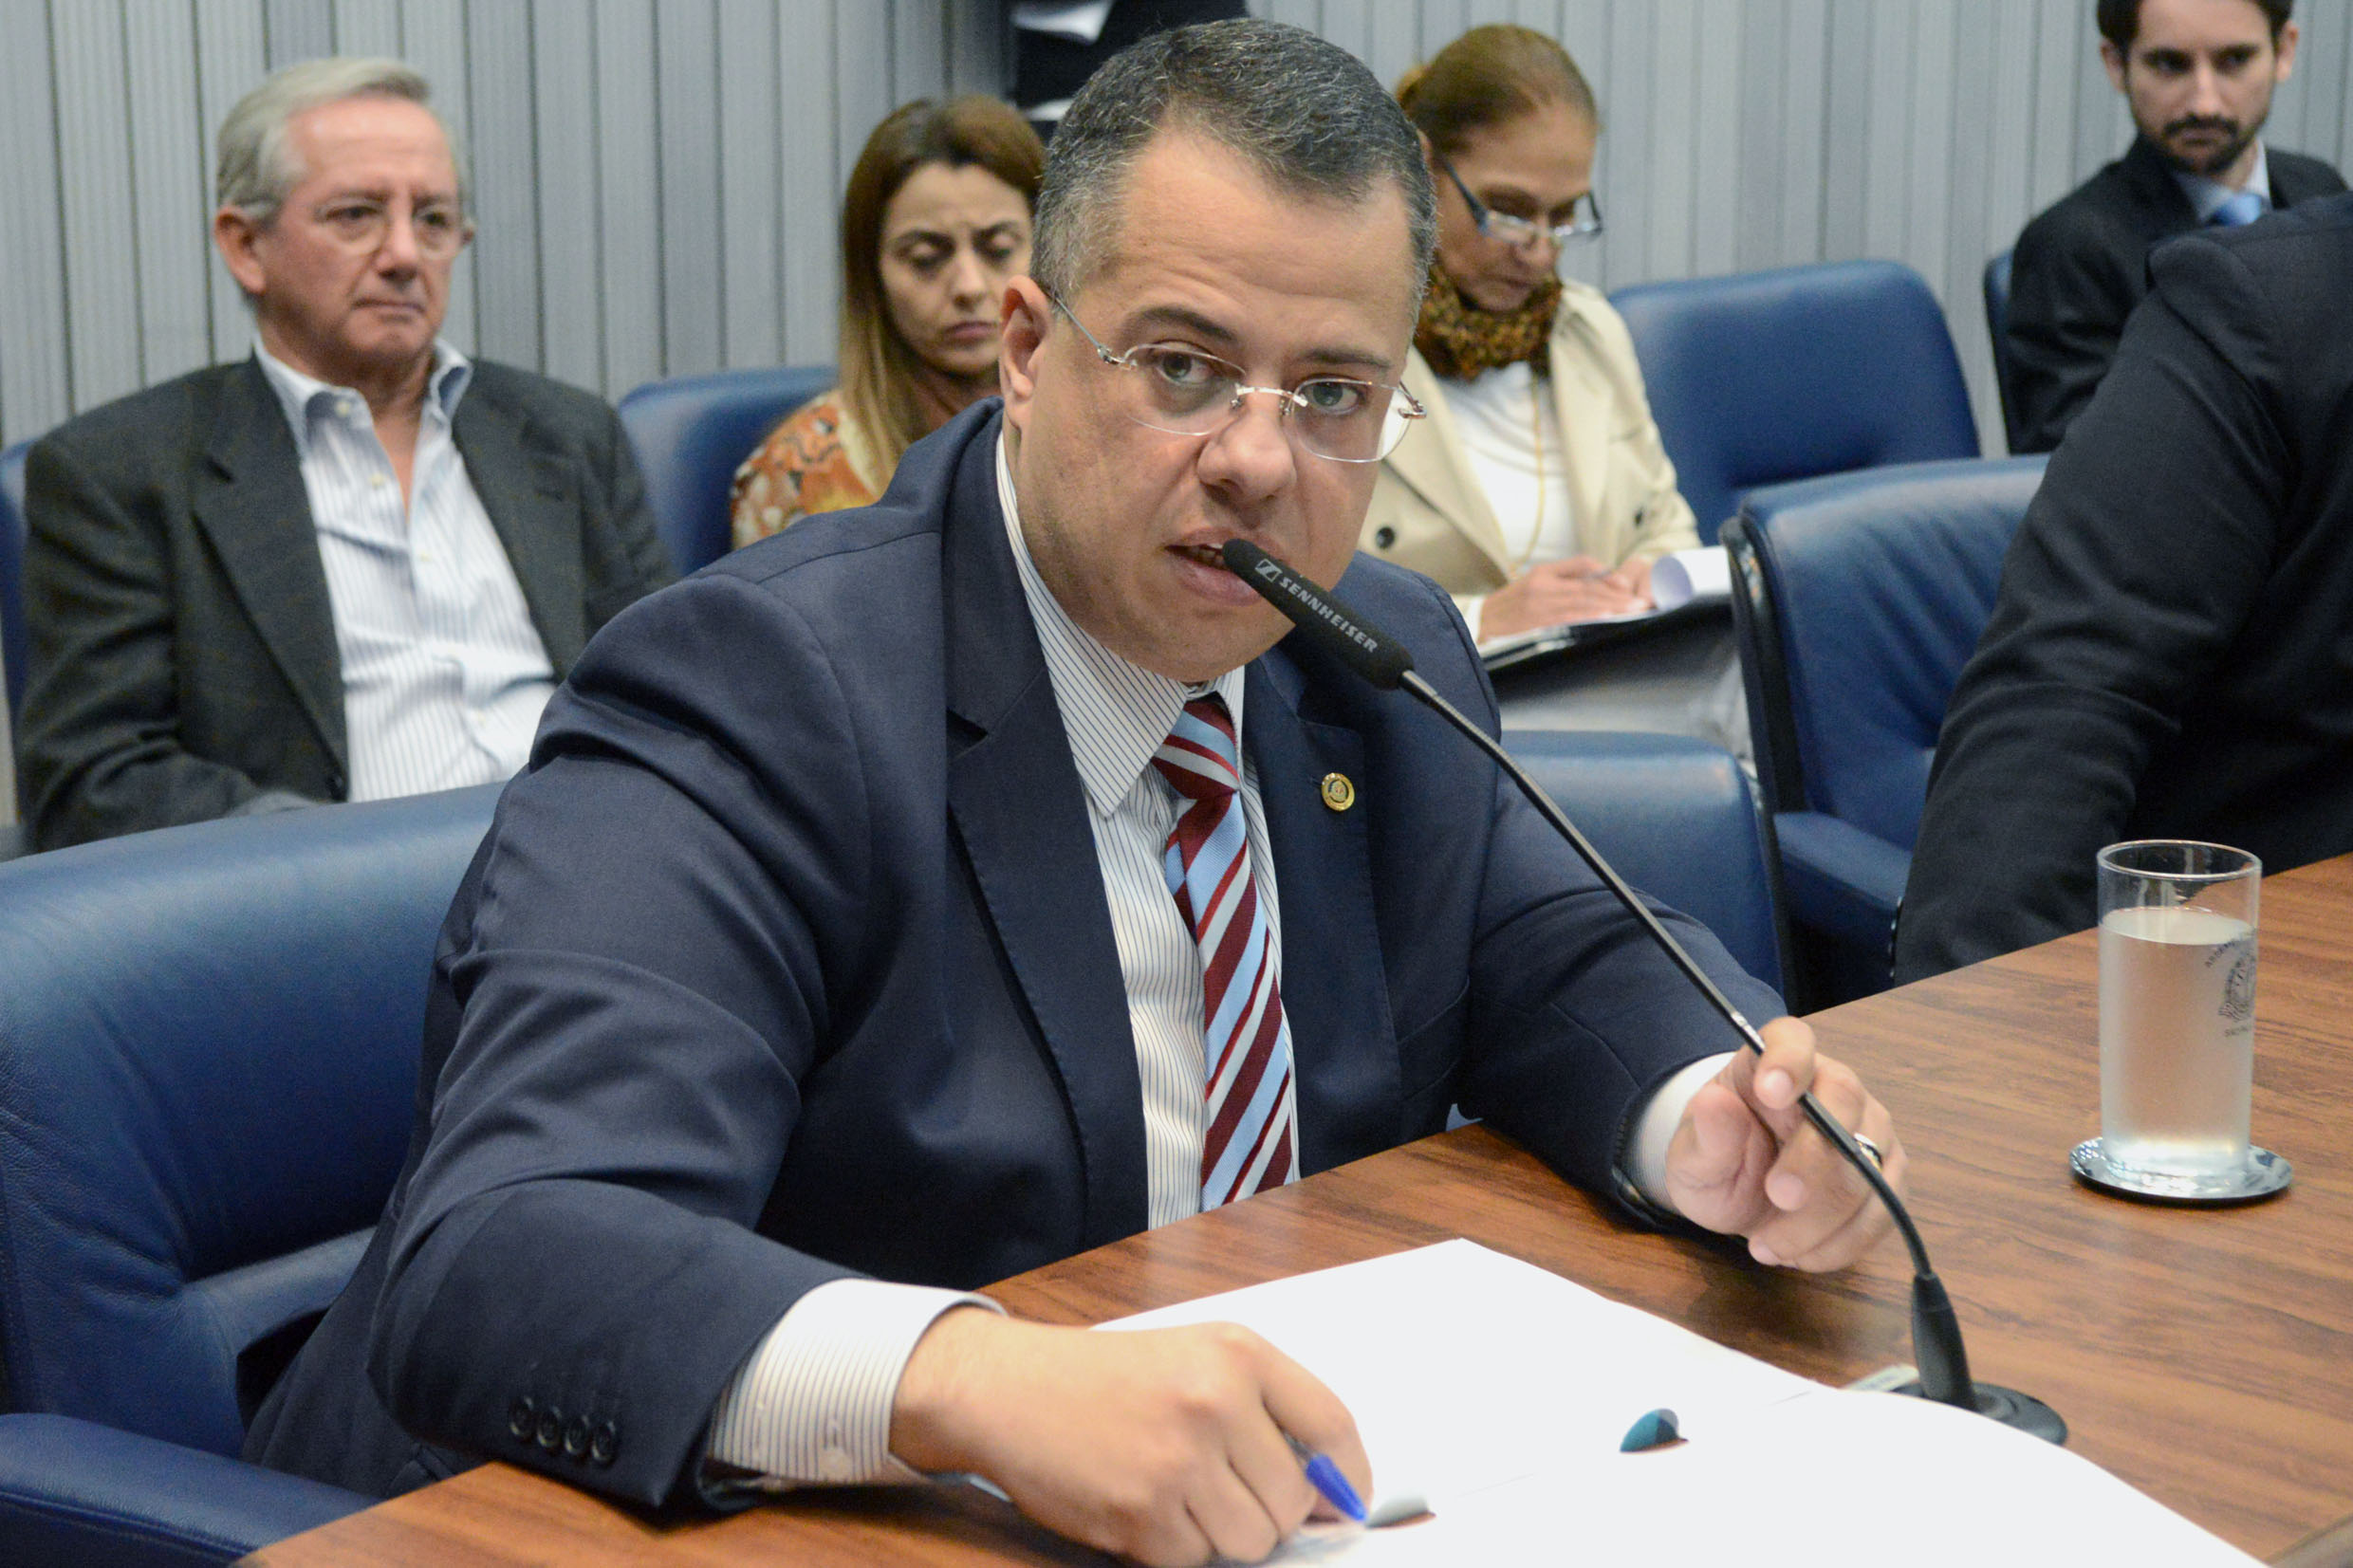 Wellington Moura<a style='float:right' href='https://www3.al.sp.gov.br/repositorio/noticia/N-05-2018/fg223917.jpg' target=_blank><img src='/_img/material-file-download-white.png' width='14px' alt='Clique para baixar a imagem'></a>